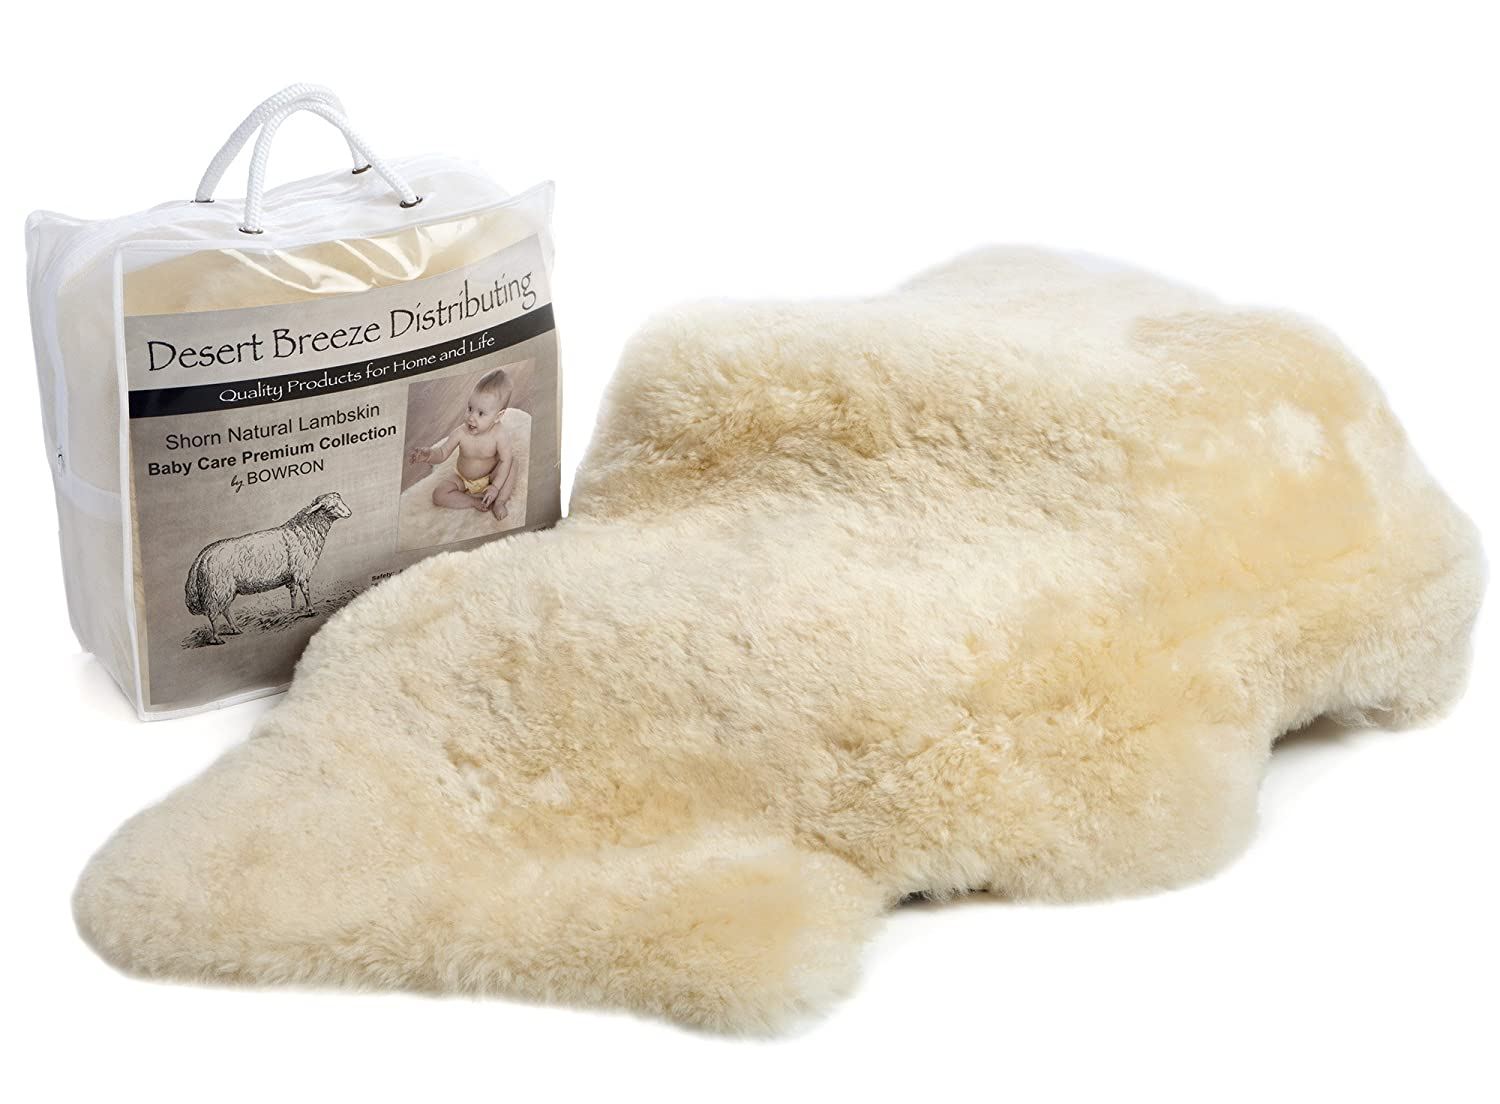 Classic New Zealand Sheepskin Baby Rug, 100% Natural, Washable, Silky Soft Short Wool, Medium Size, Oeko-Tex and Woolmark Certified, Made in New Zealand Desert Breeze Distributing